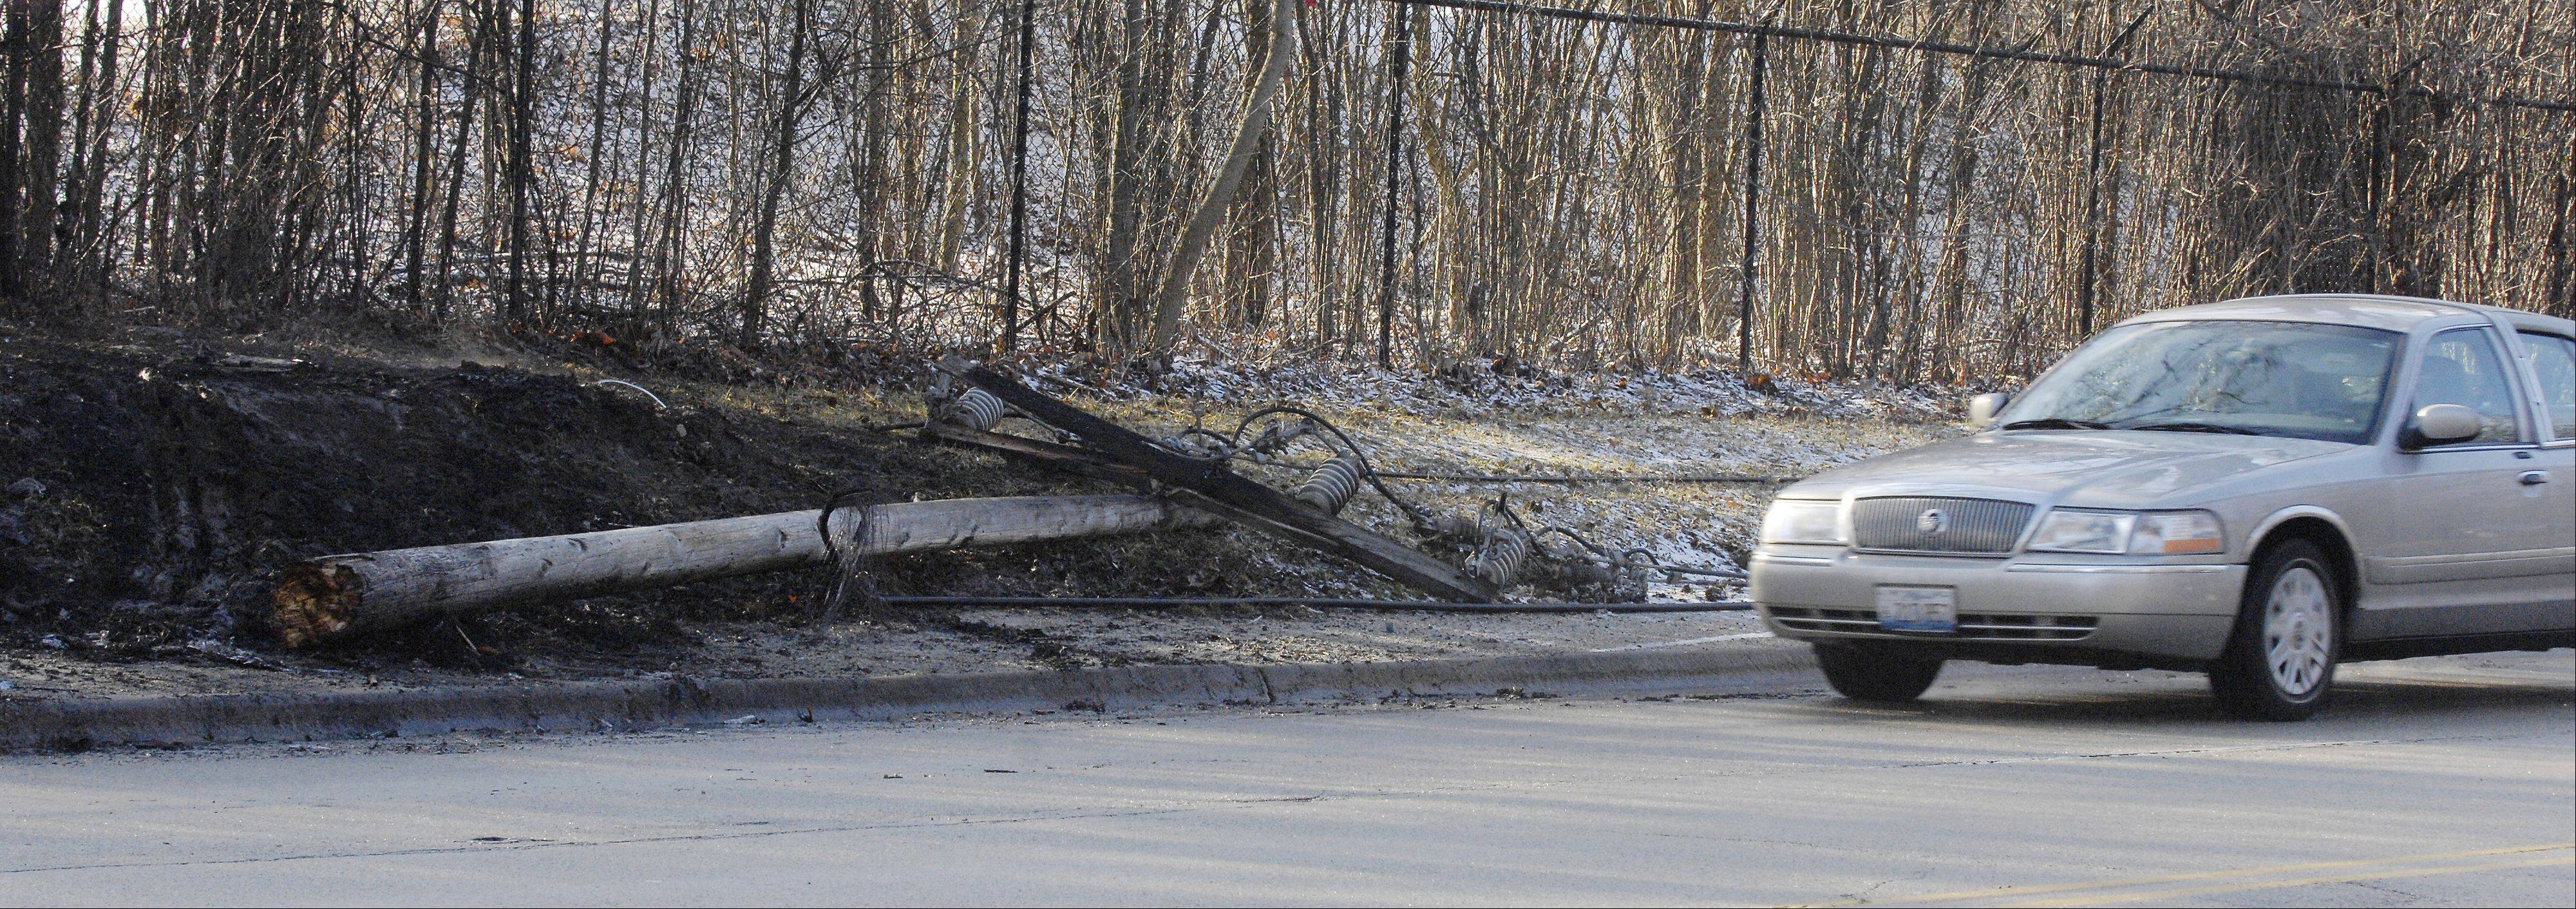 An early-morning crash on Winfield Road in unincorporated DuPage County resulted in a downed utility pole and a car engulfed in flames. The stretch of Winfield Road between Roosevelt and Mack roads was closed.